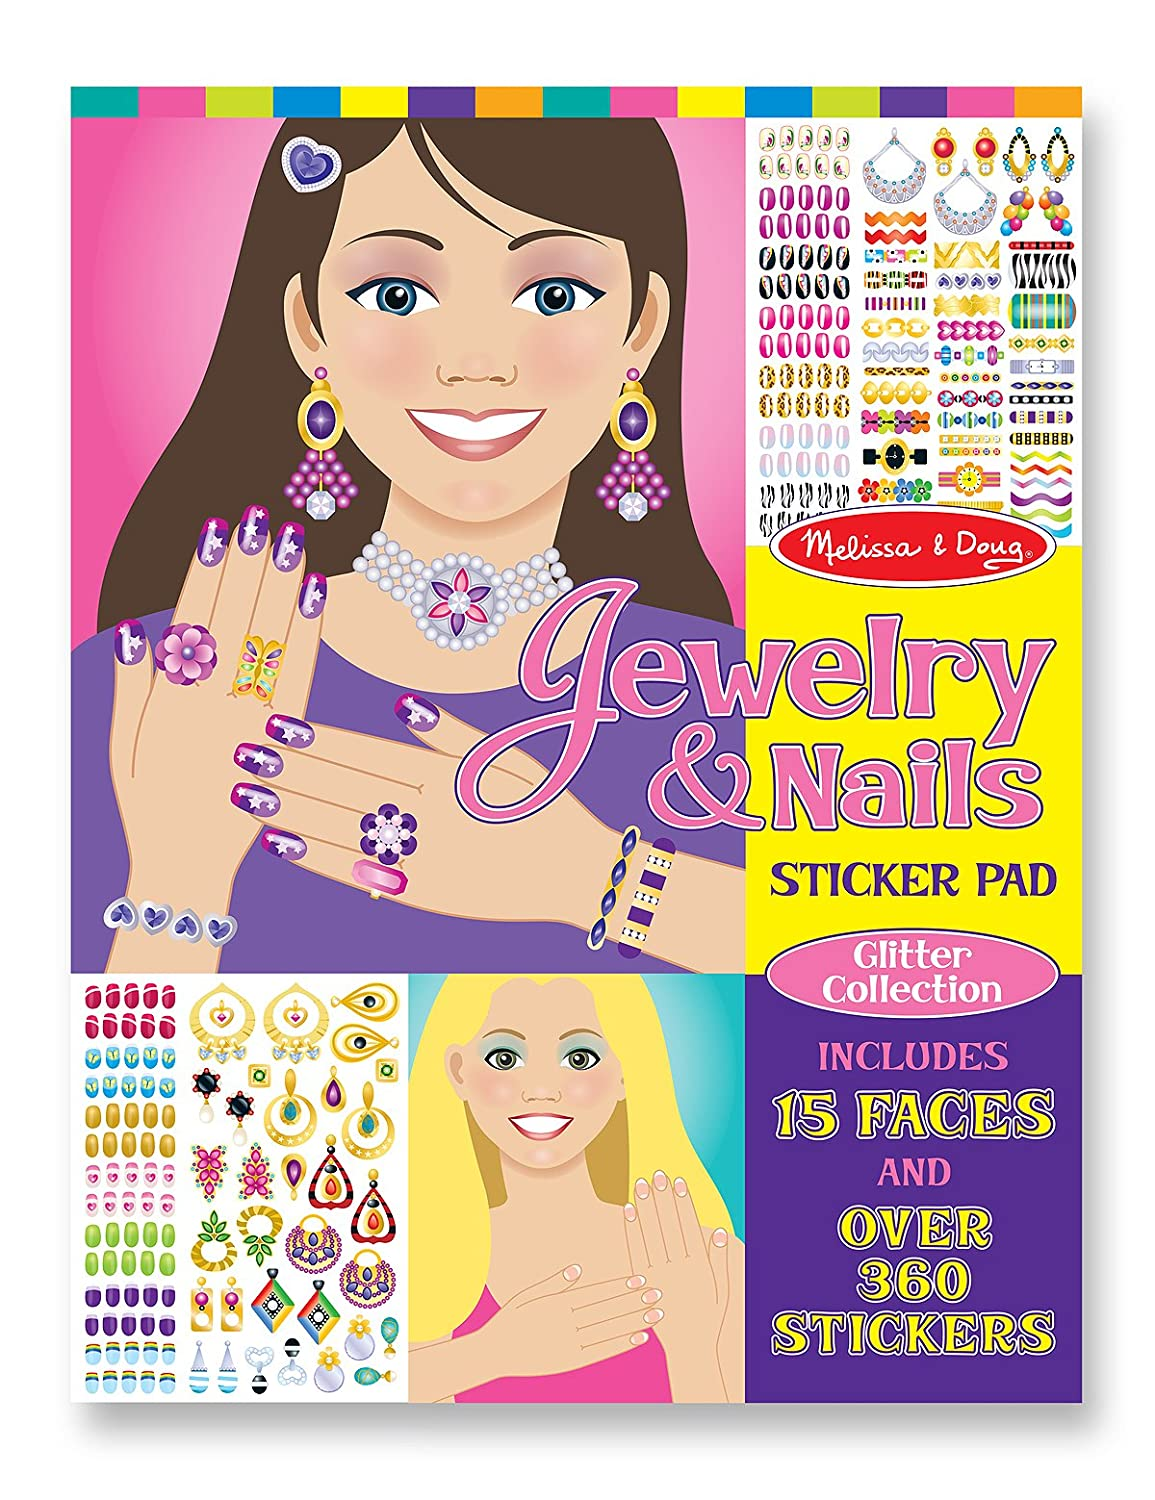 Melissa Doug Jewelry and Nails Glitter Sticker Pad 360 Stickers 15 Faces